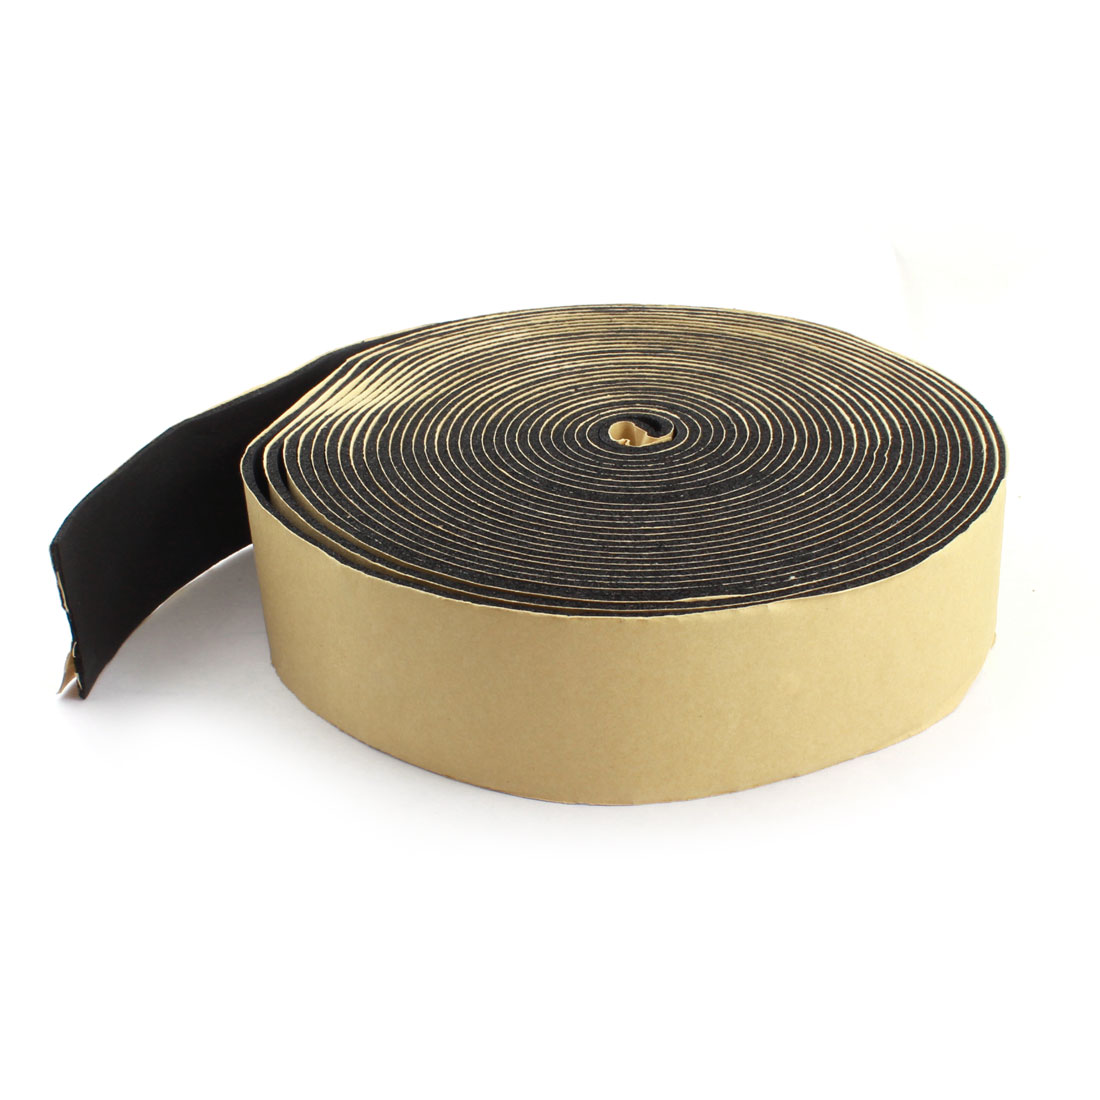 Black Electric Wire Protector Self-Adhesive Elastomeric Insulating Tape 10m Long